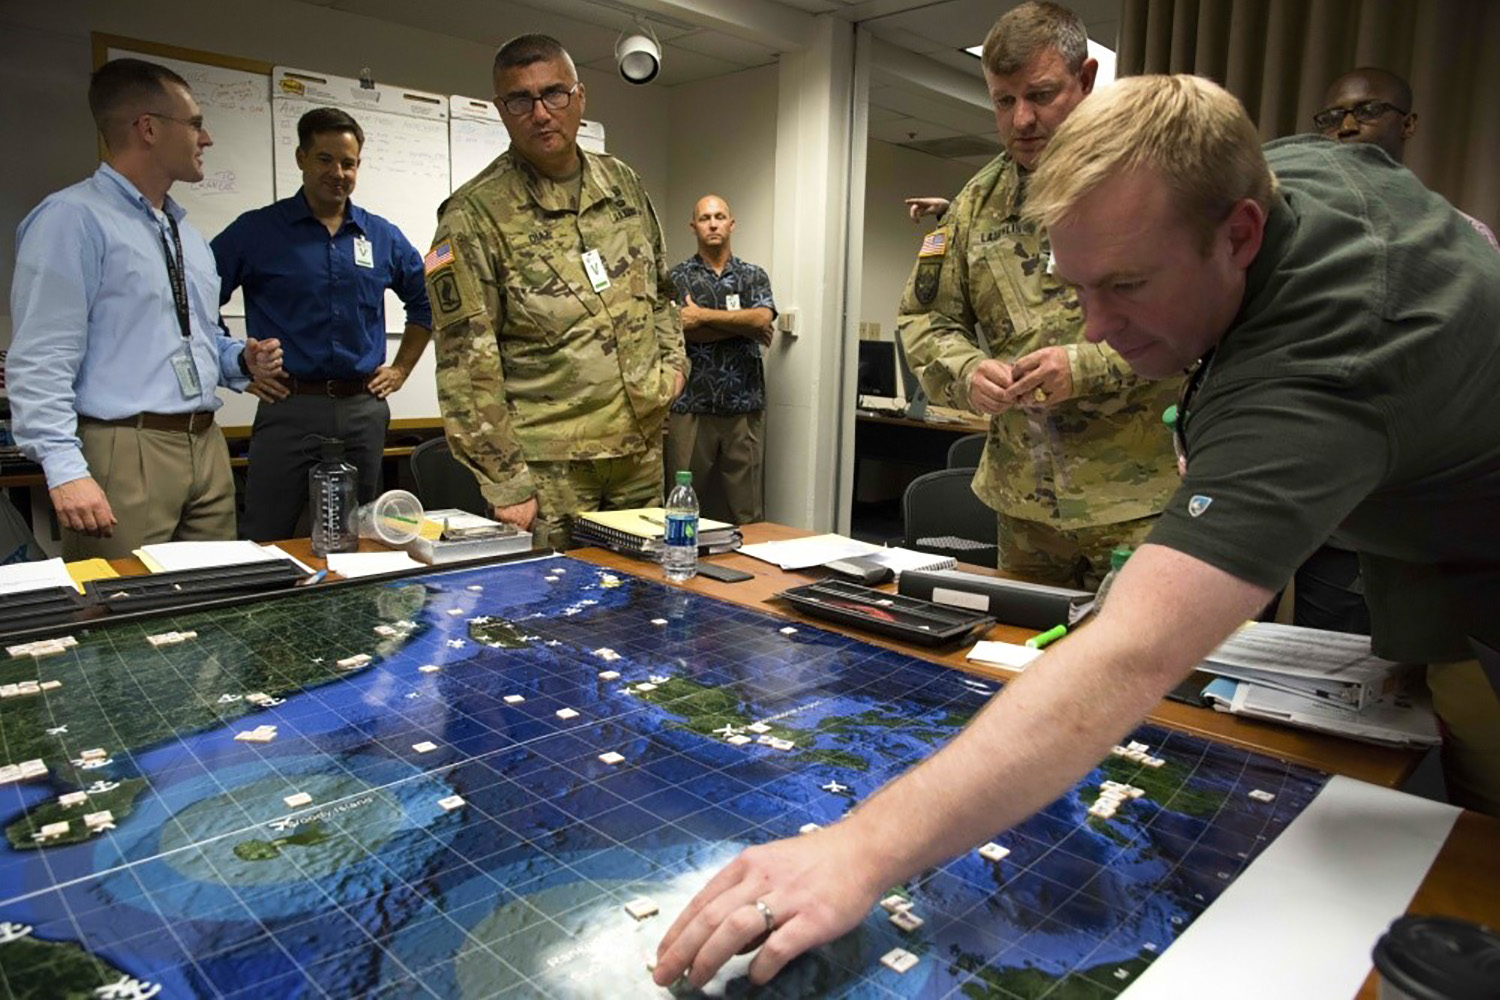 Naval Postgraduate School students participate in analytic wargames they designed to explore solutions for the Department of Defense's national security concerns in 2018.